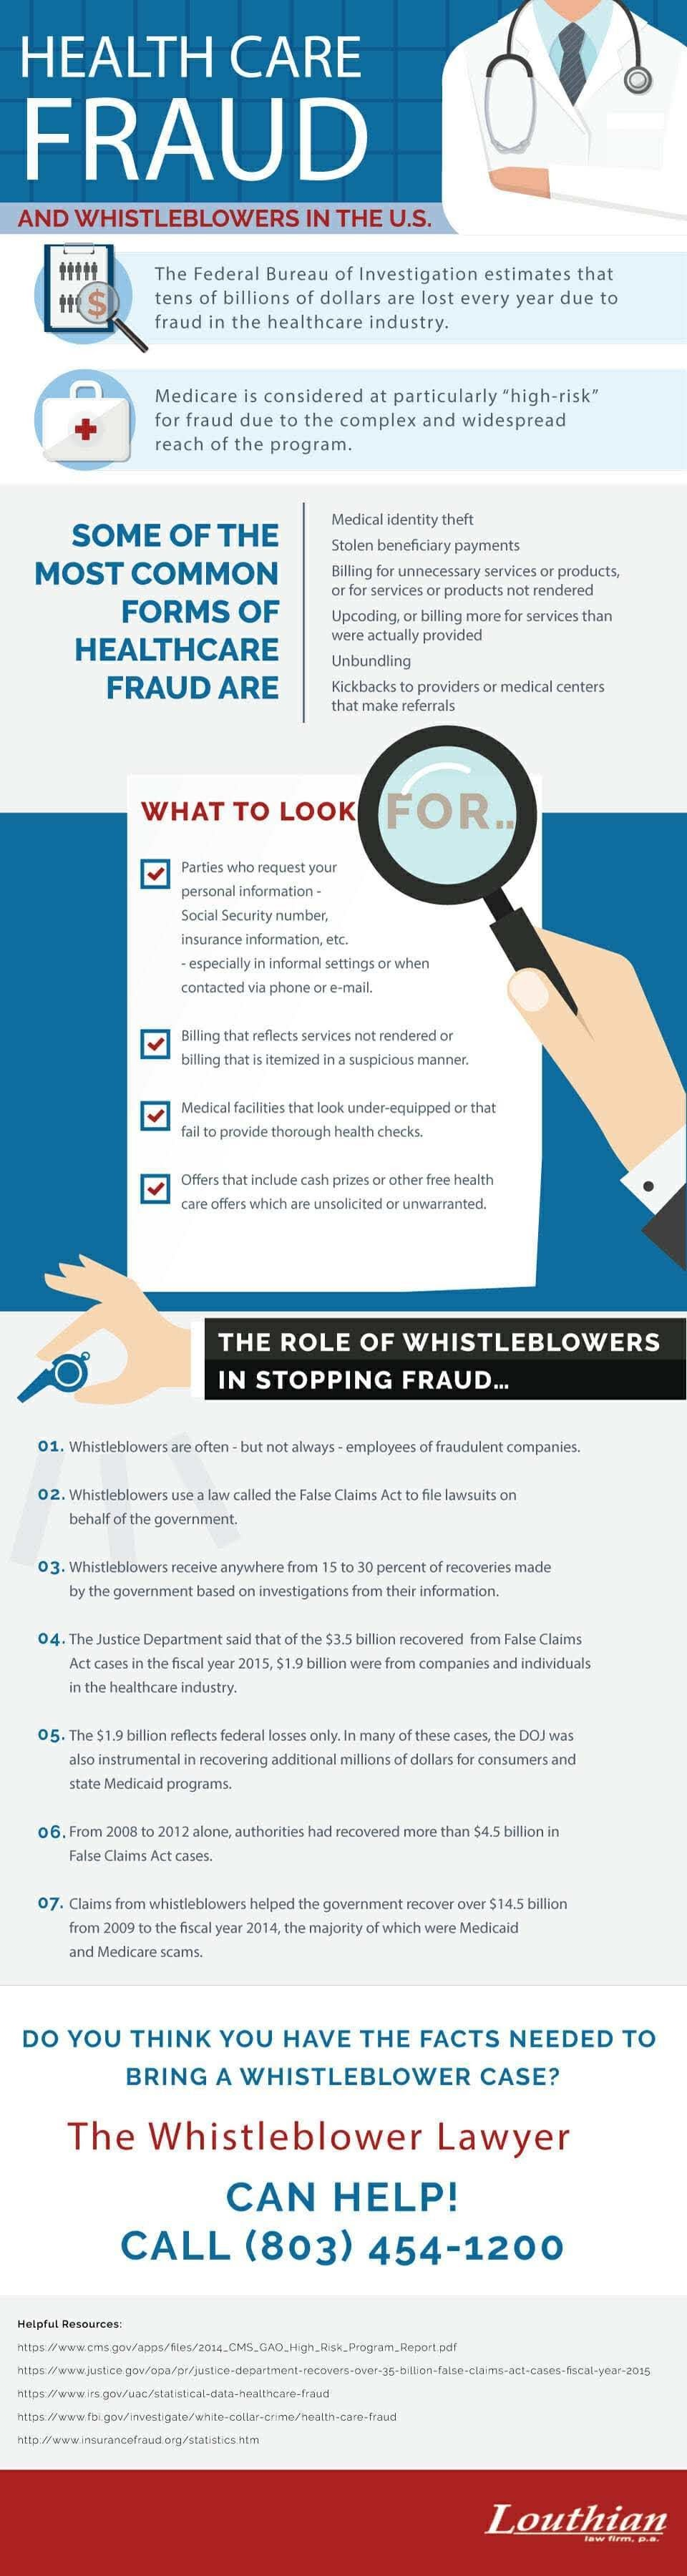 In the United States, Health Care Fraud and Whistleblower #infographic